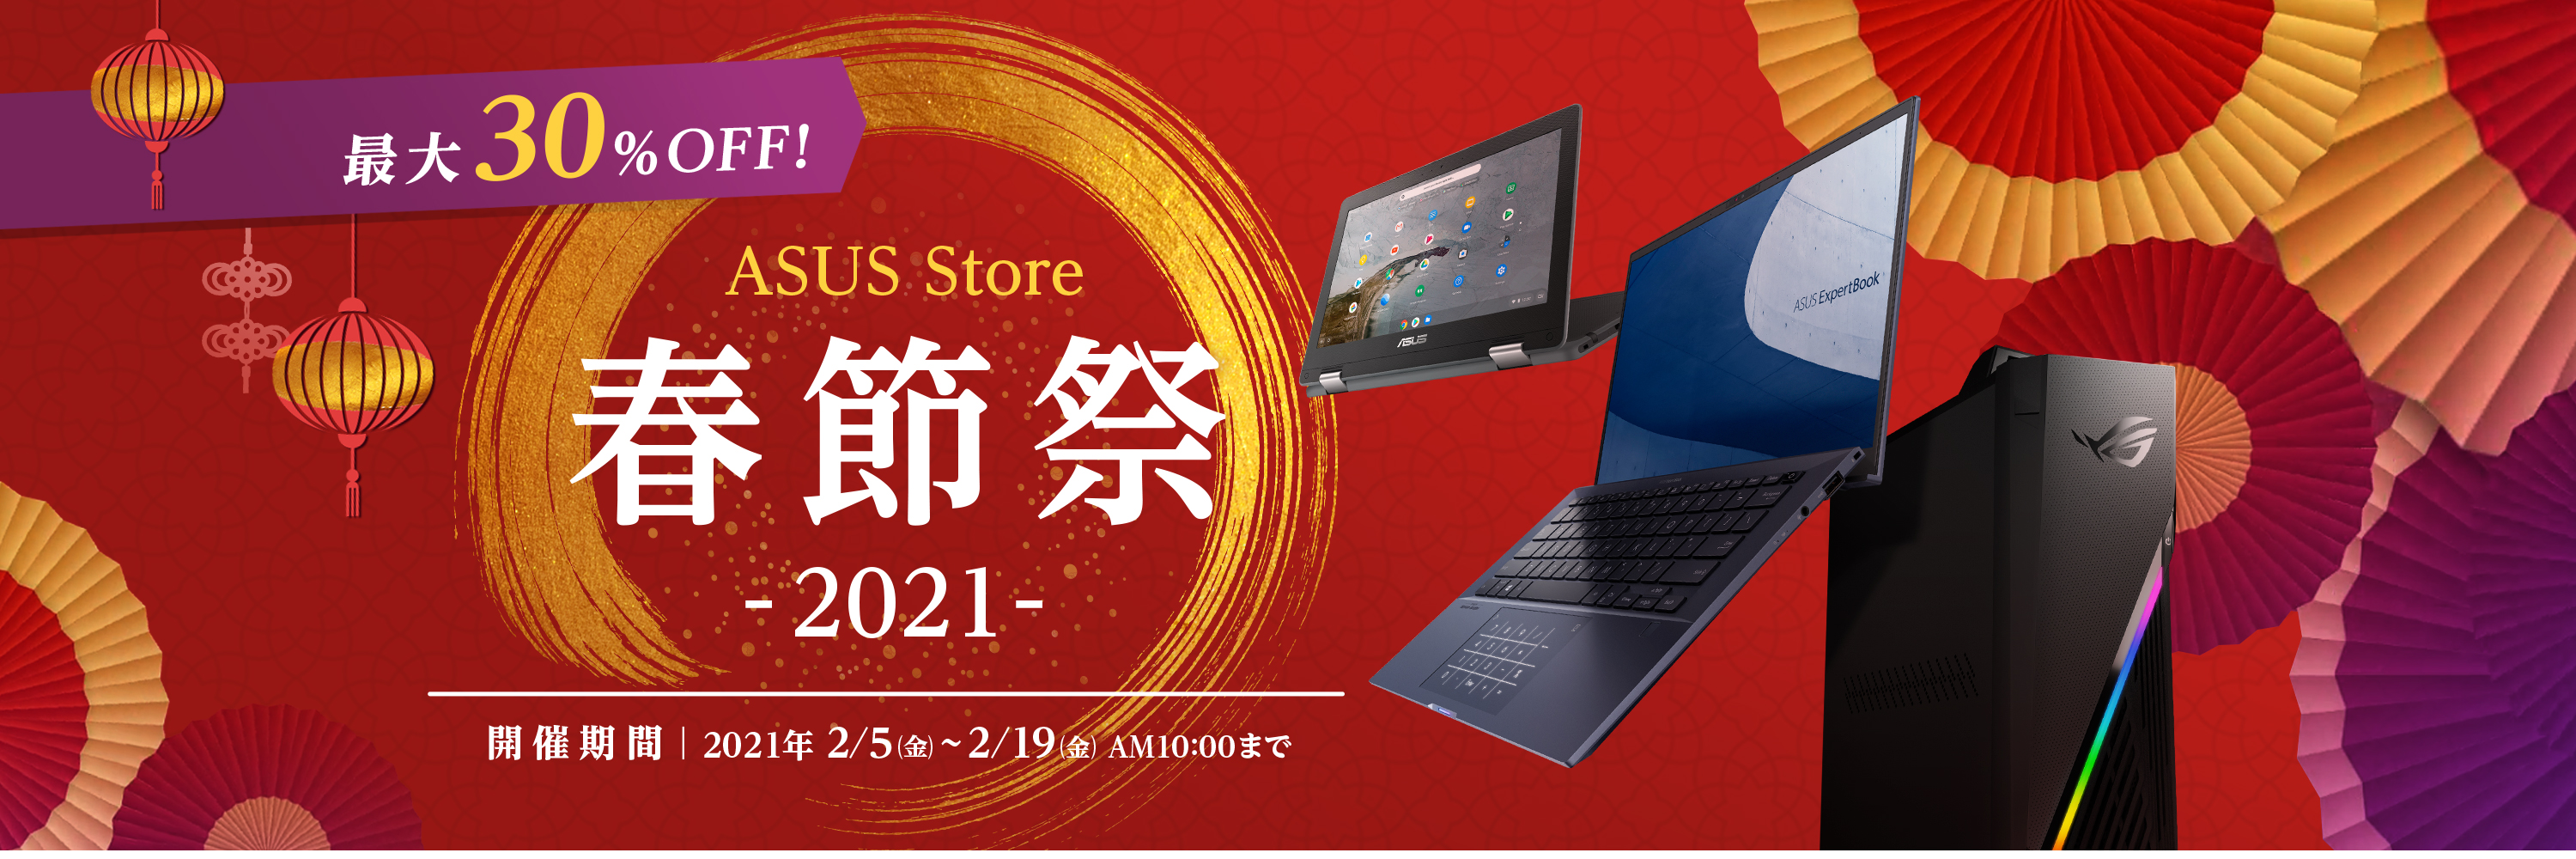 ASUS 公式オンラインストア「ASUS Store Online」